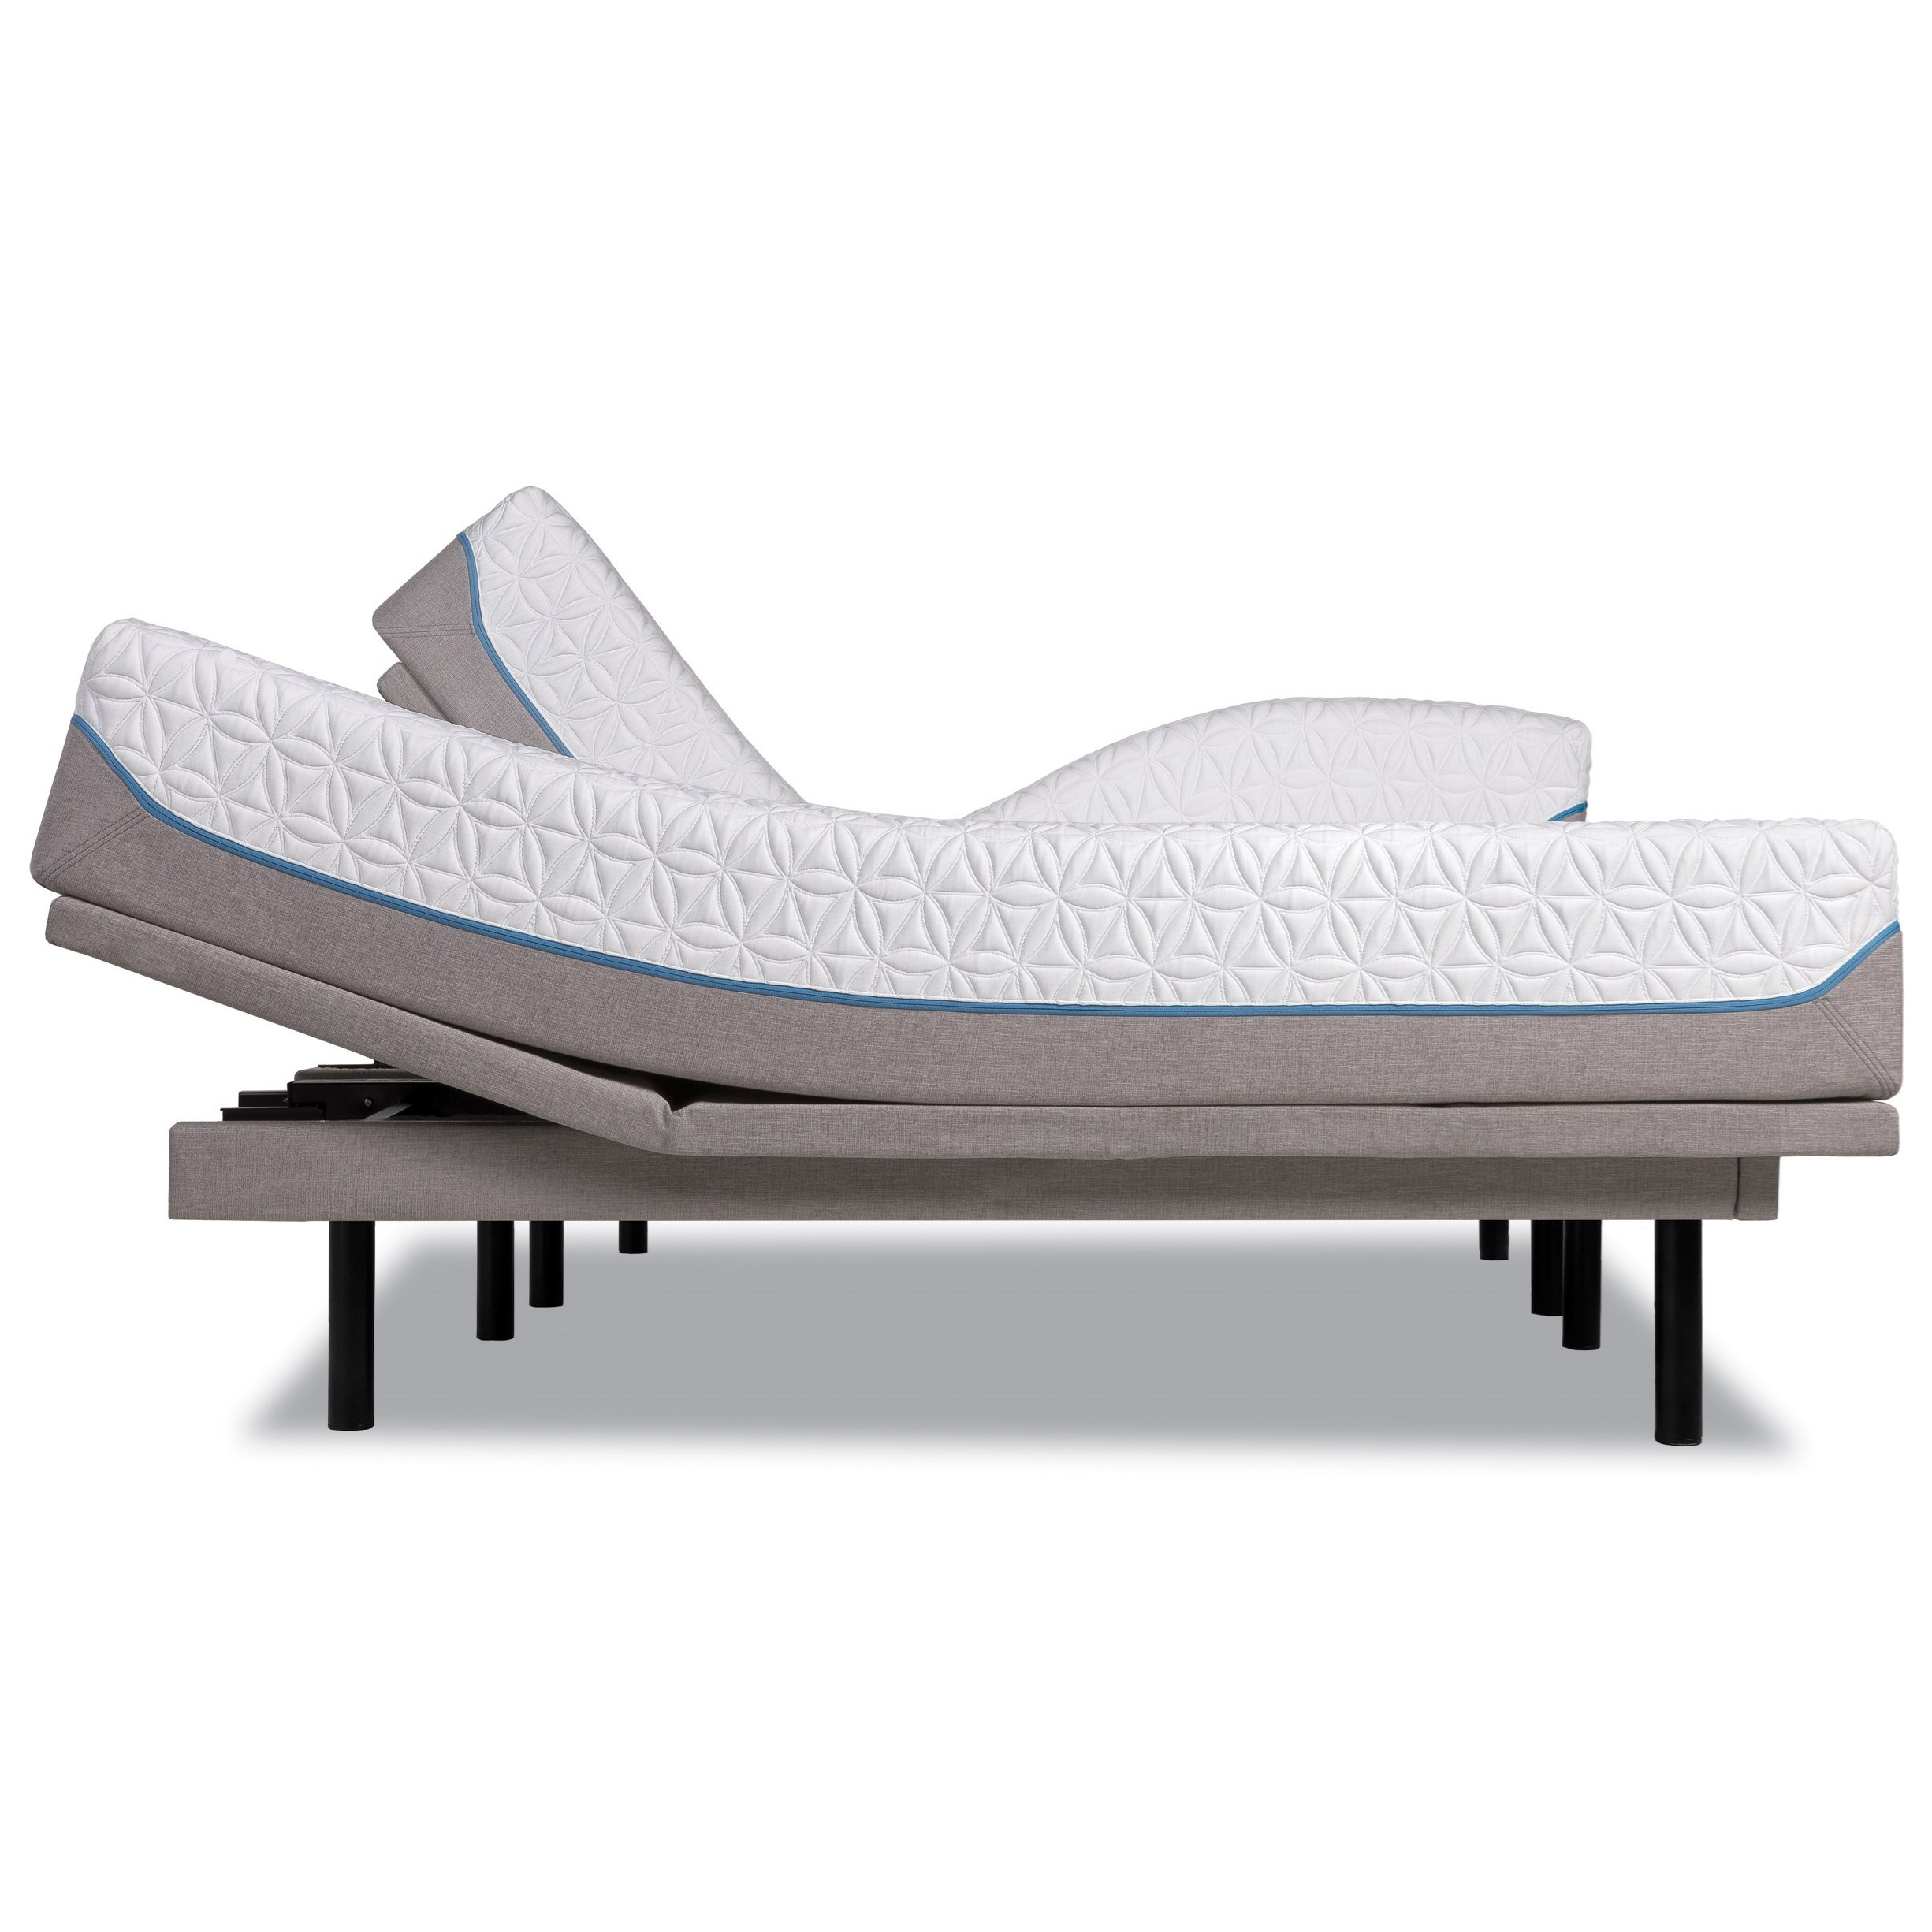 Tempur-Pedic® TEMPUR-Cloud Supreme King Soft Adjustable Set - Item Number: 10240270+2x25289220G